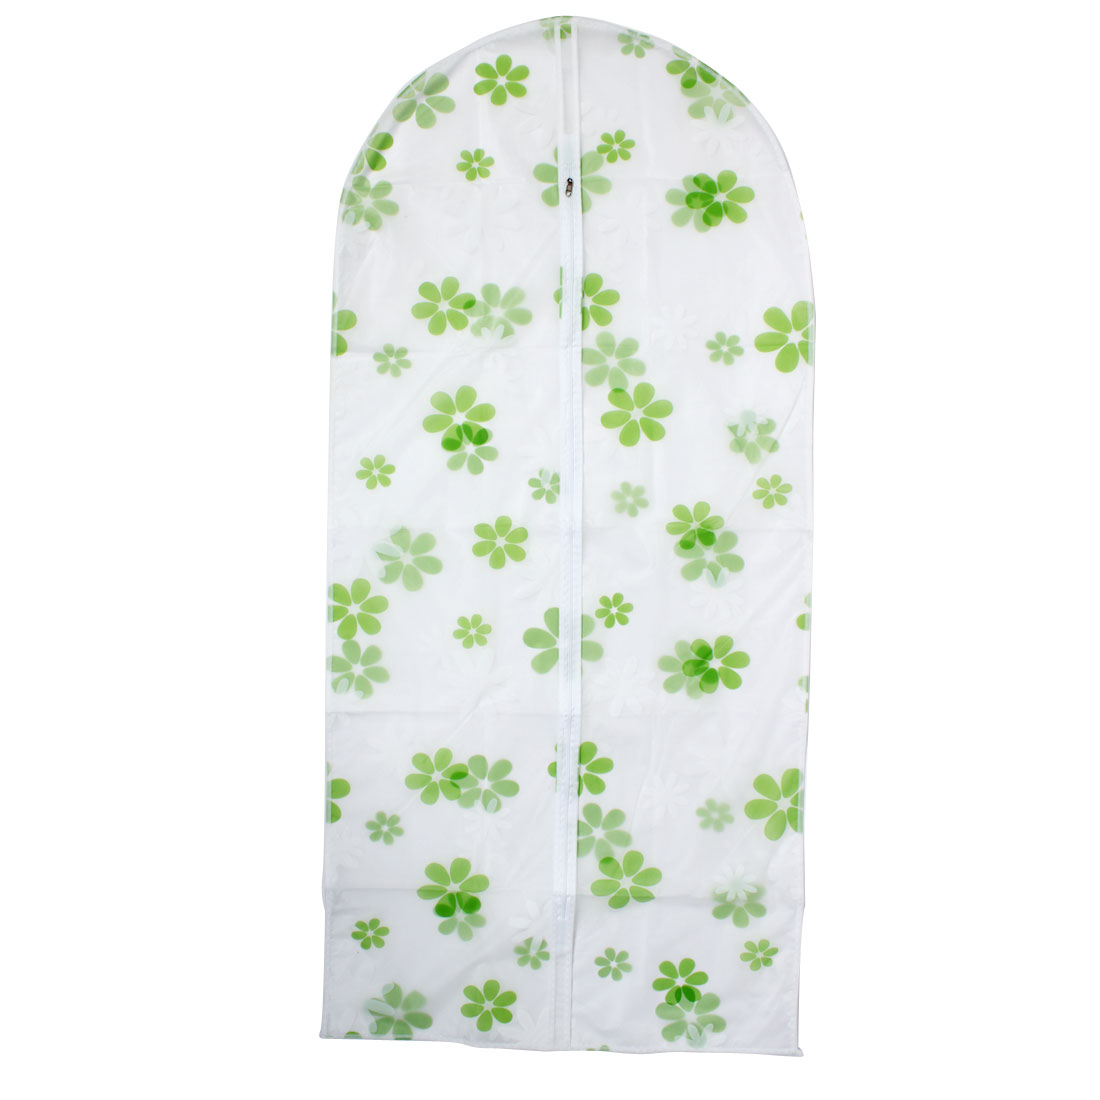 Clothes Suit Garment PEVA Flower Pattern Dustproof Cover Bag 130cm x 60cm